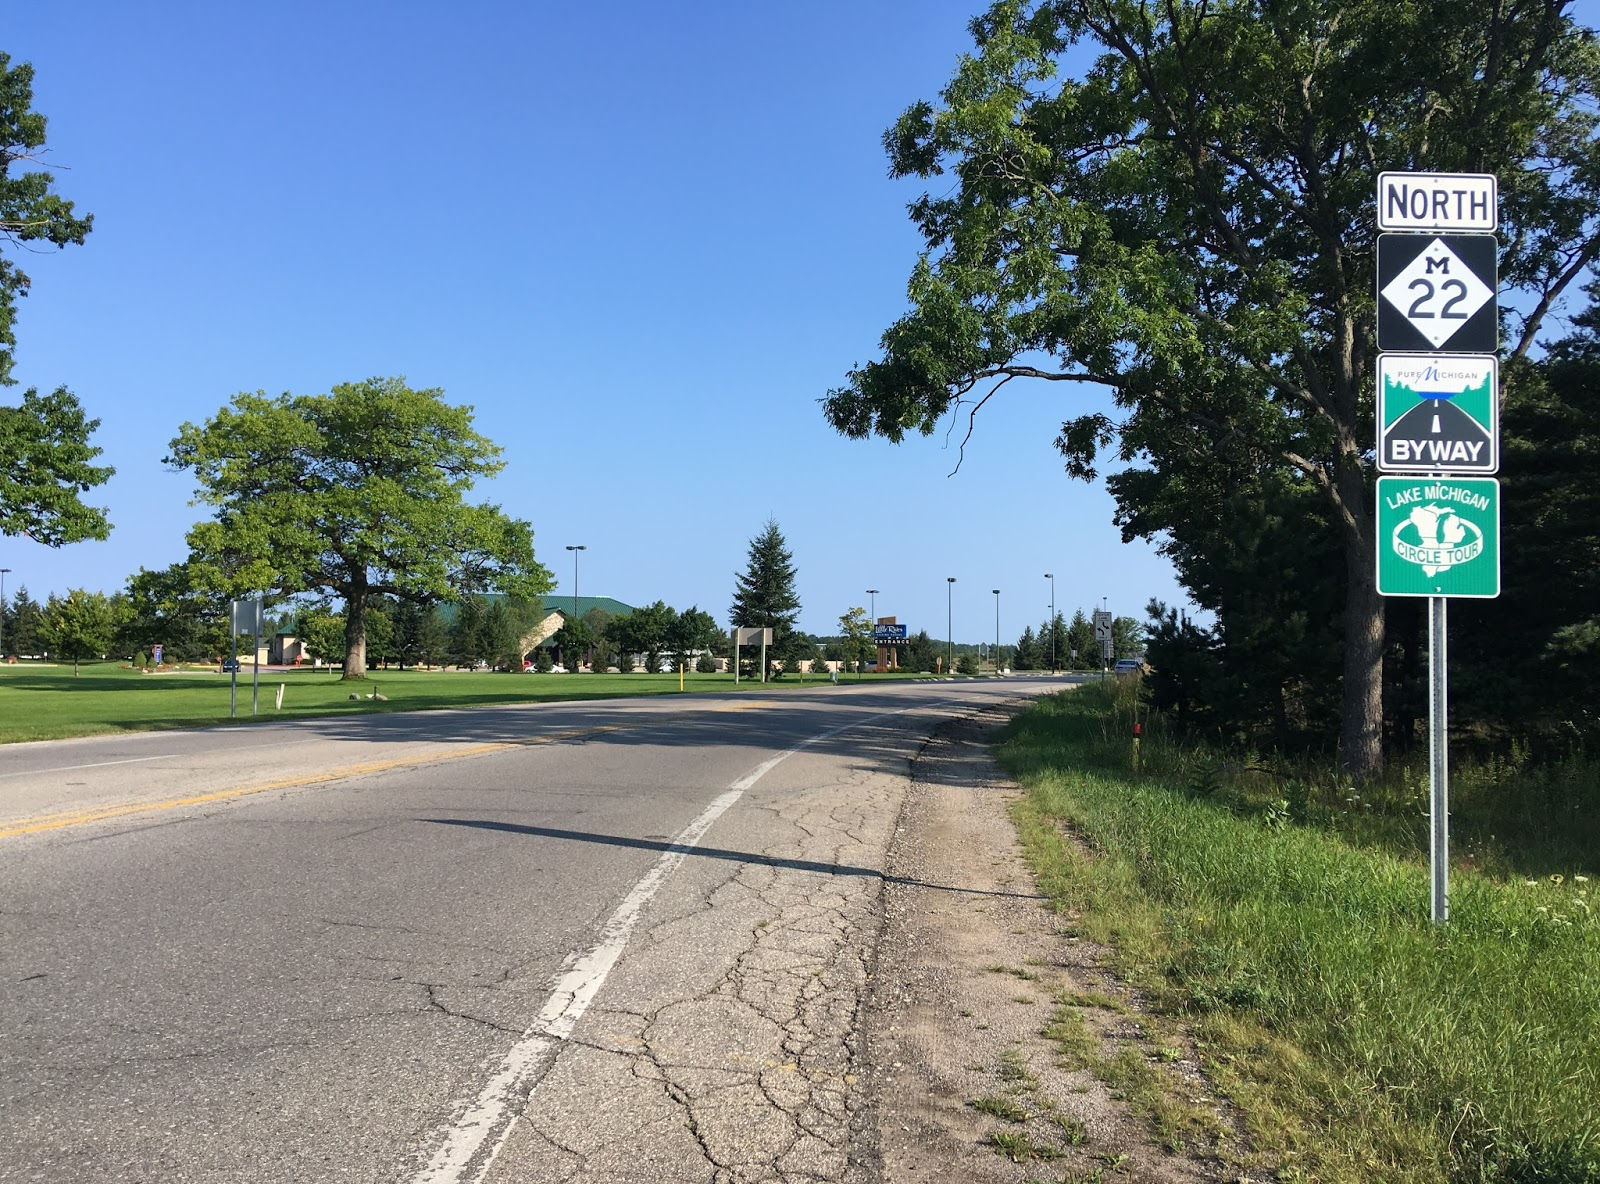 i started out from the very south end at us 31 in manistee in the county bearing the same name